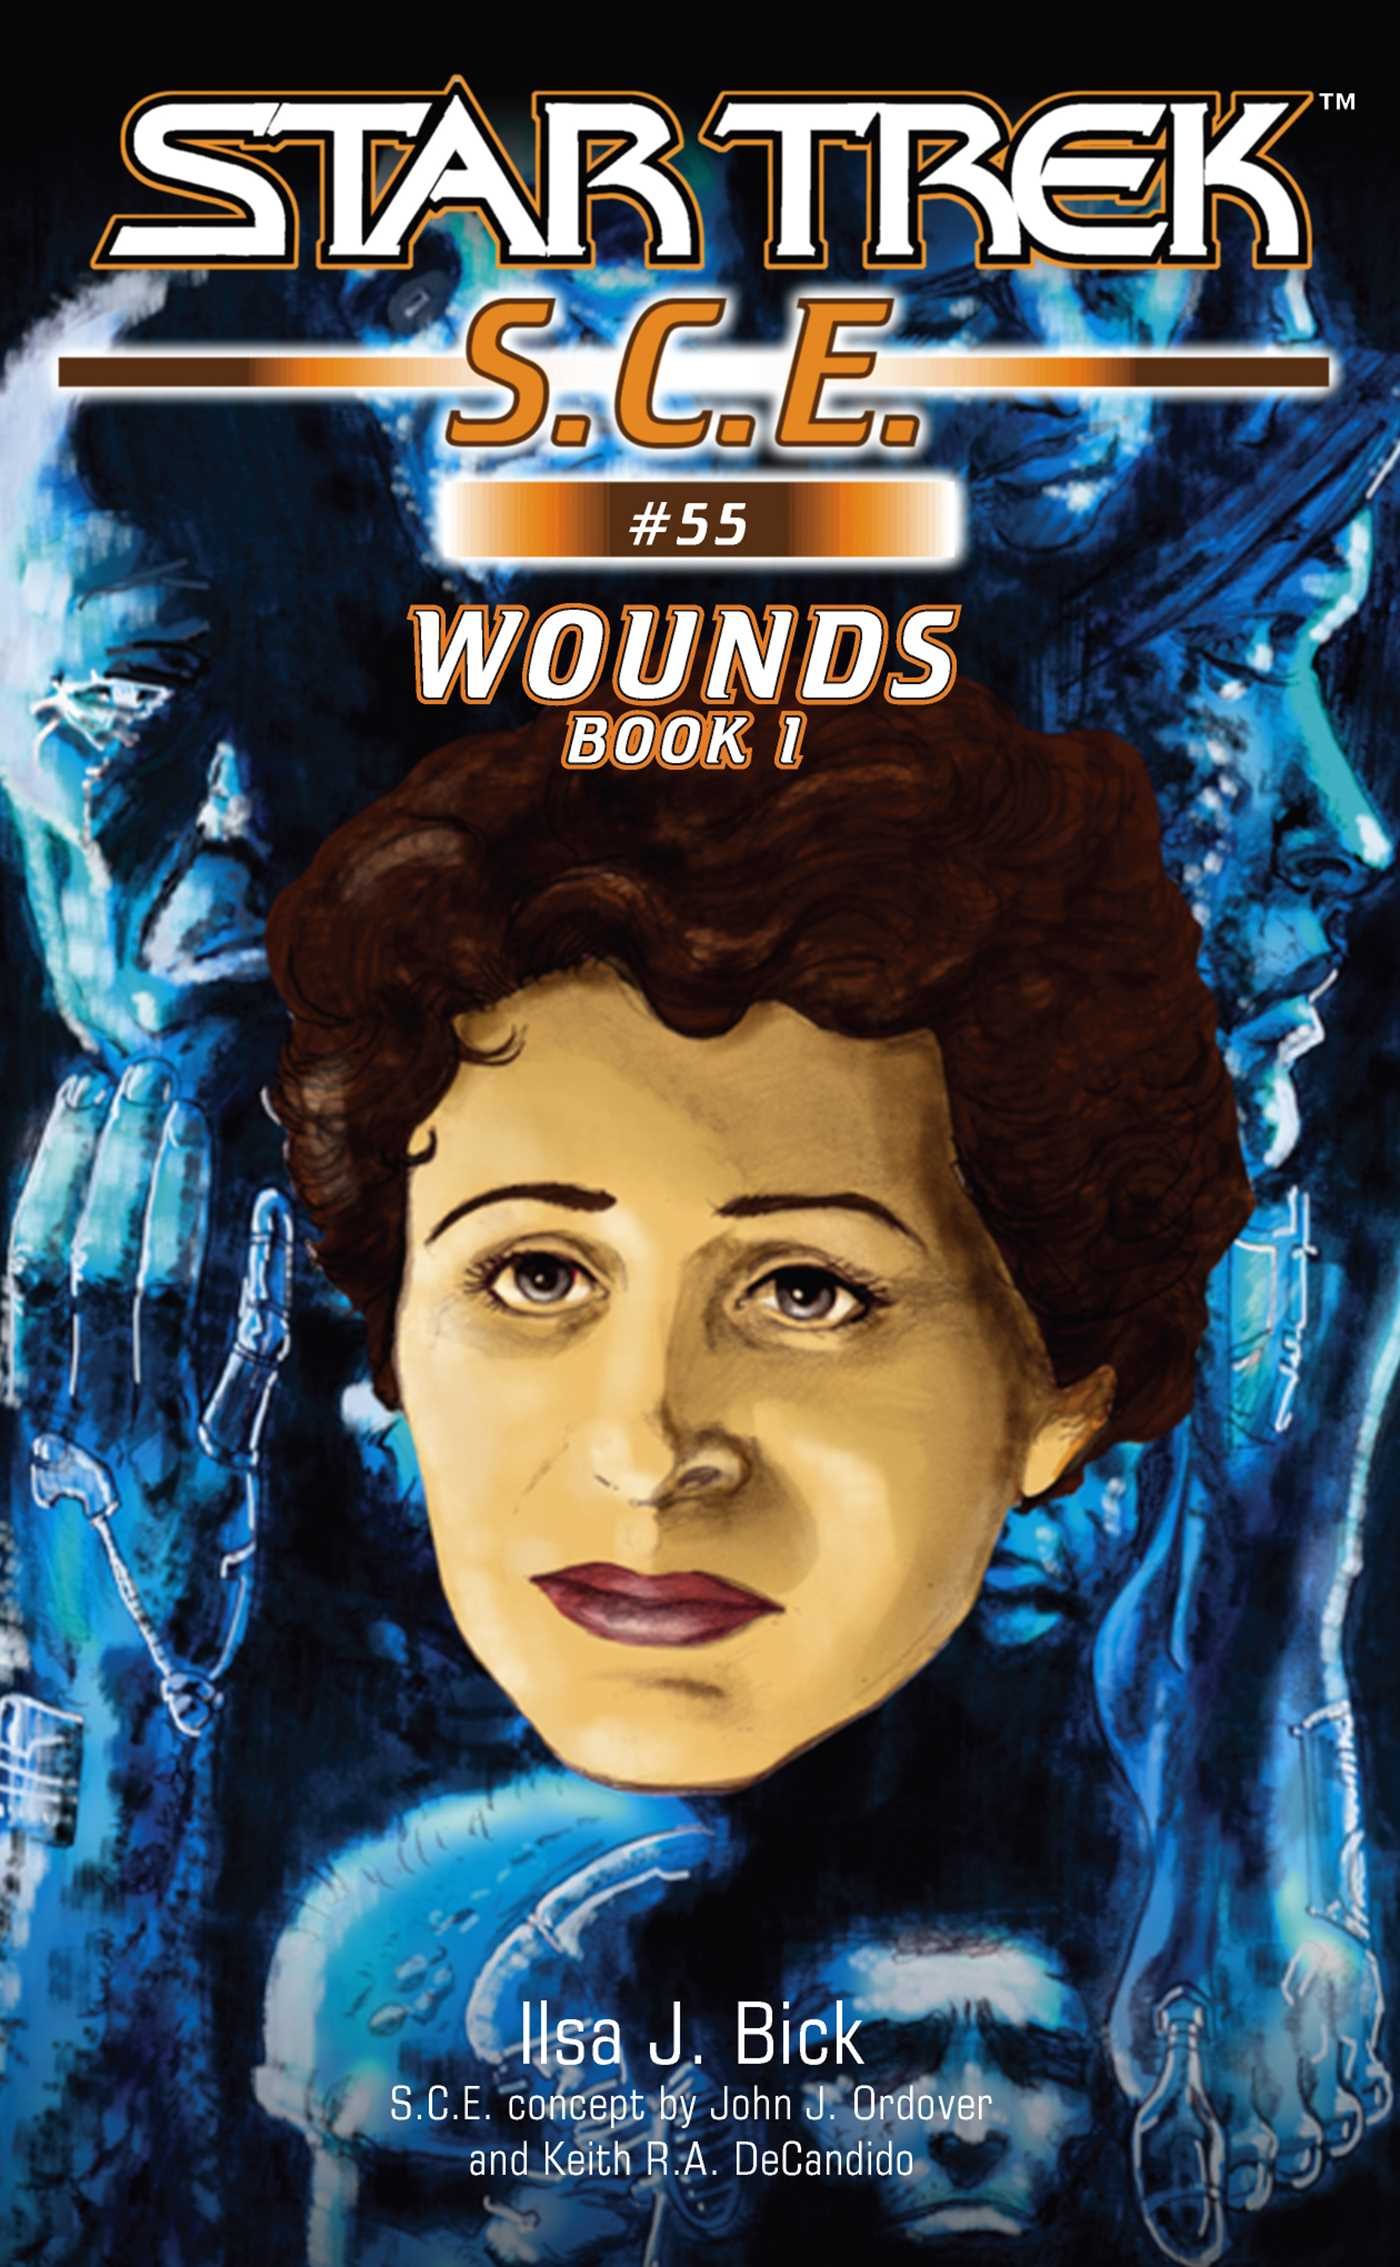 Star-trek-wounds-book-1-9781416509608_hr